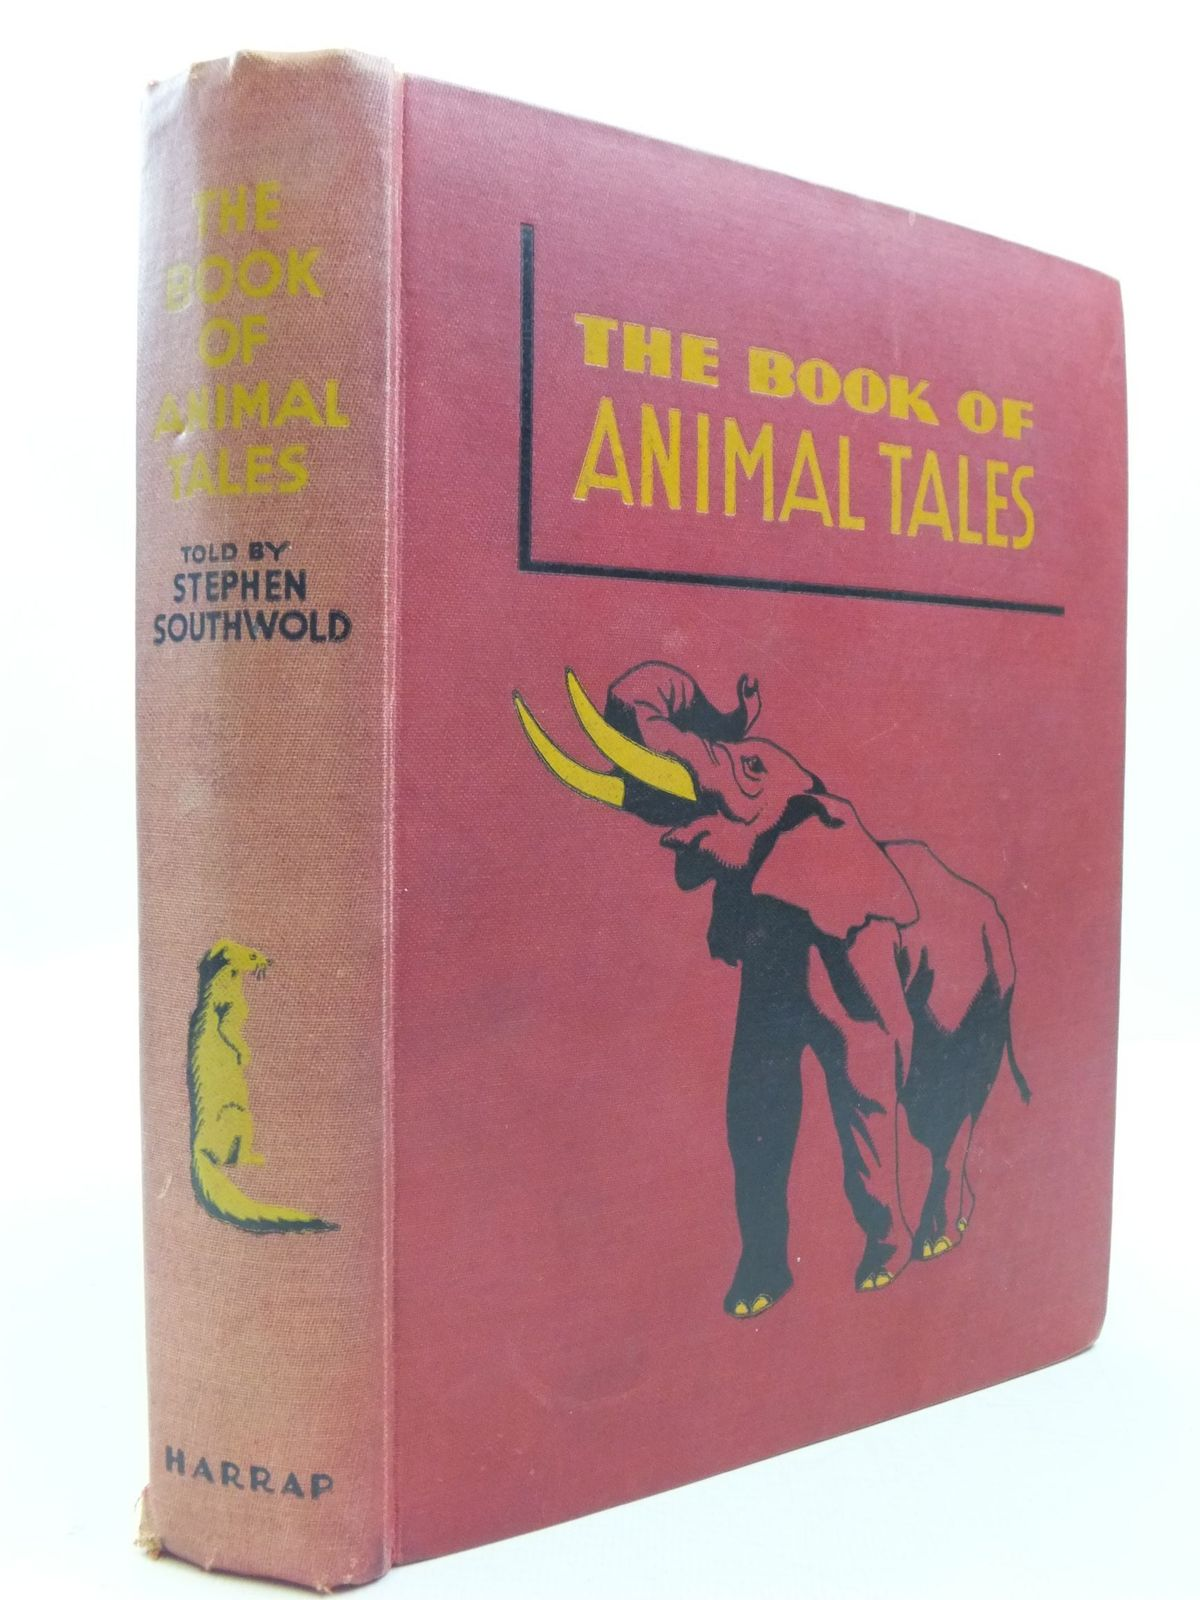 Photo of THE BOOK OF ANIMAL TALES written by Southwold, Stephen illustrated by Appleton, Honor C. published by George G. Harrap & Co. Ltd. (STOCK CODE: 1709712)  for sale by Stella & Rose's Books